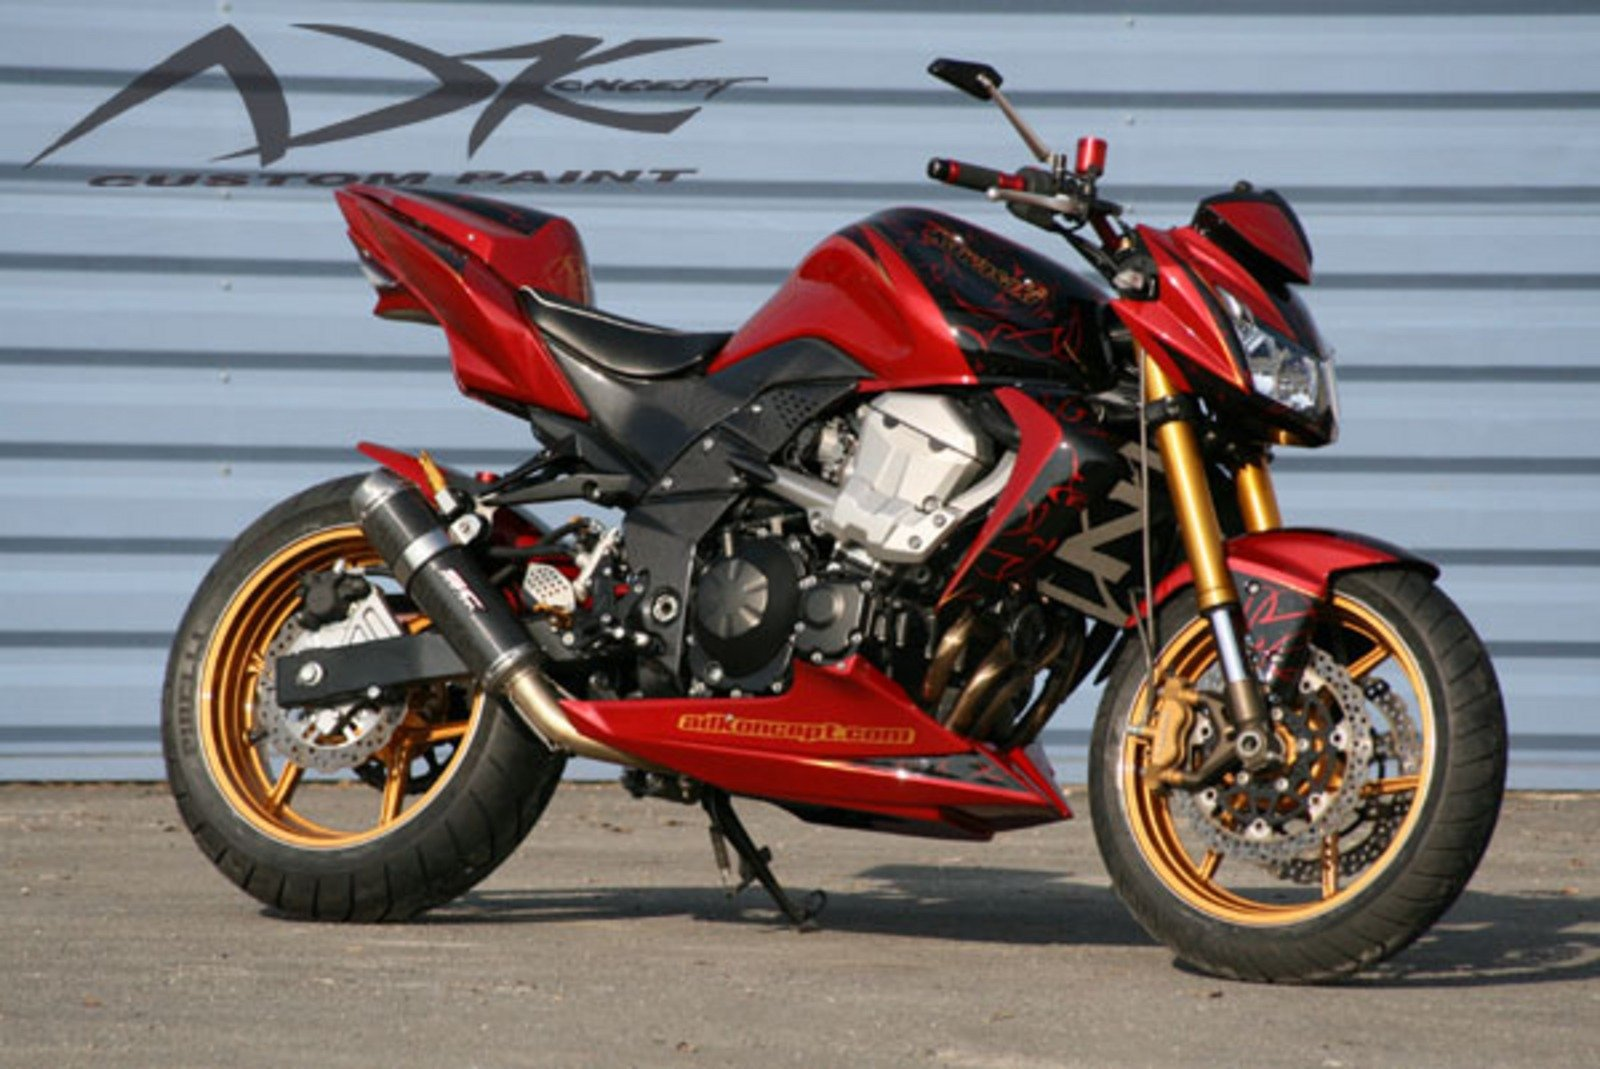 kawasaki z750 redluxe by ad koncept news top speed. Black Bedroom Furniture Sets. Home Design Ideas